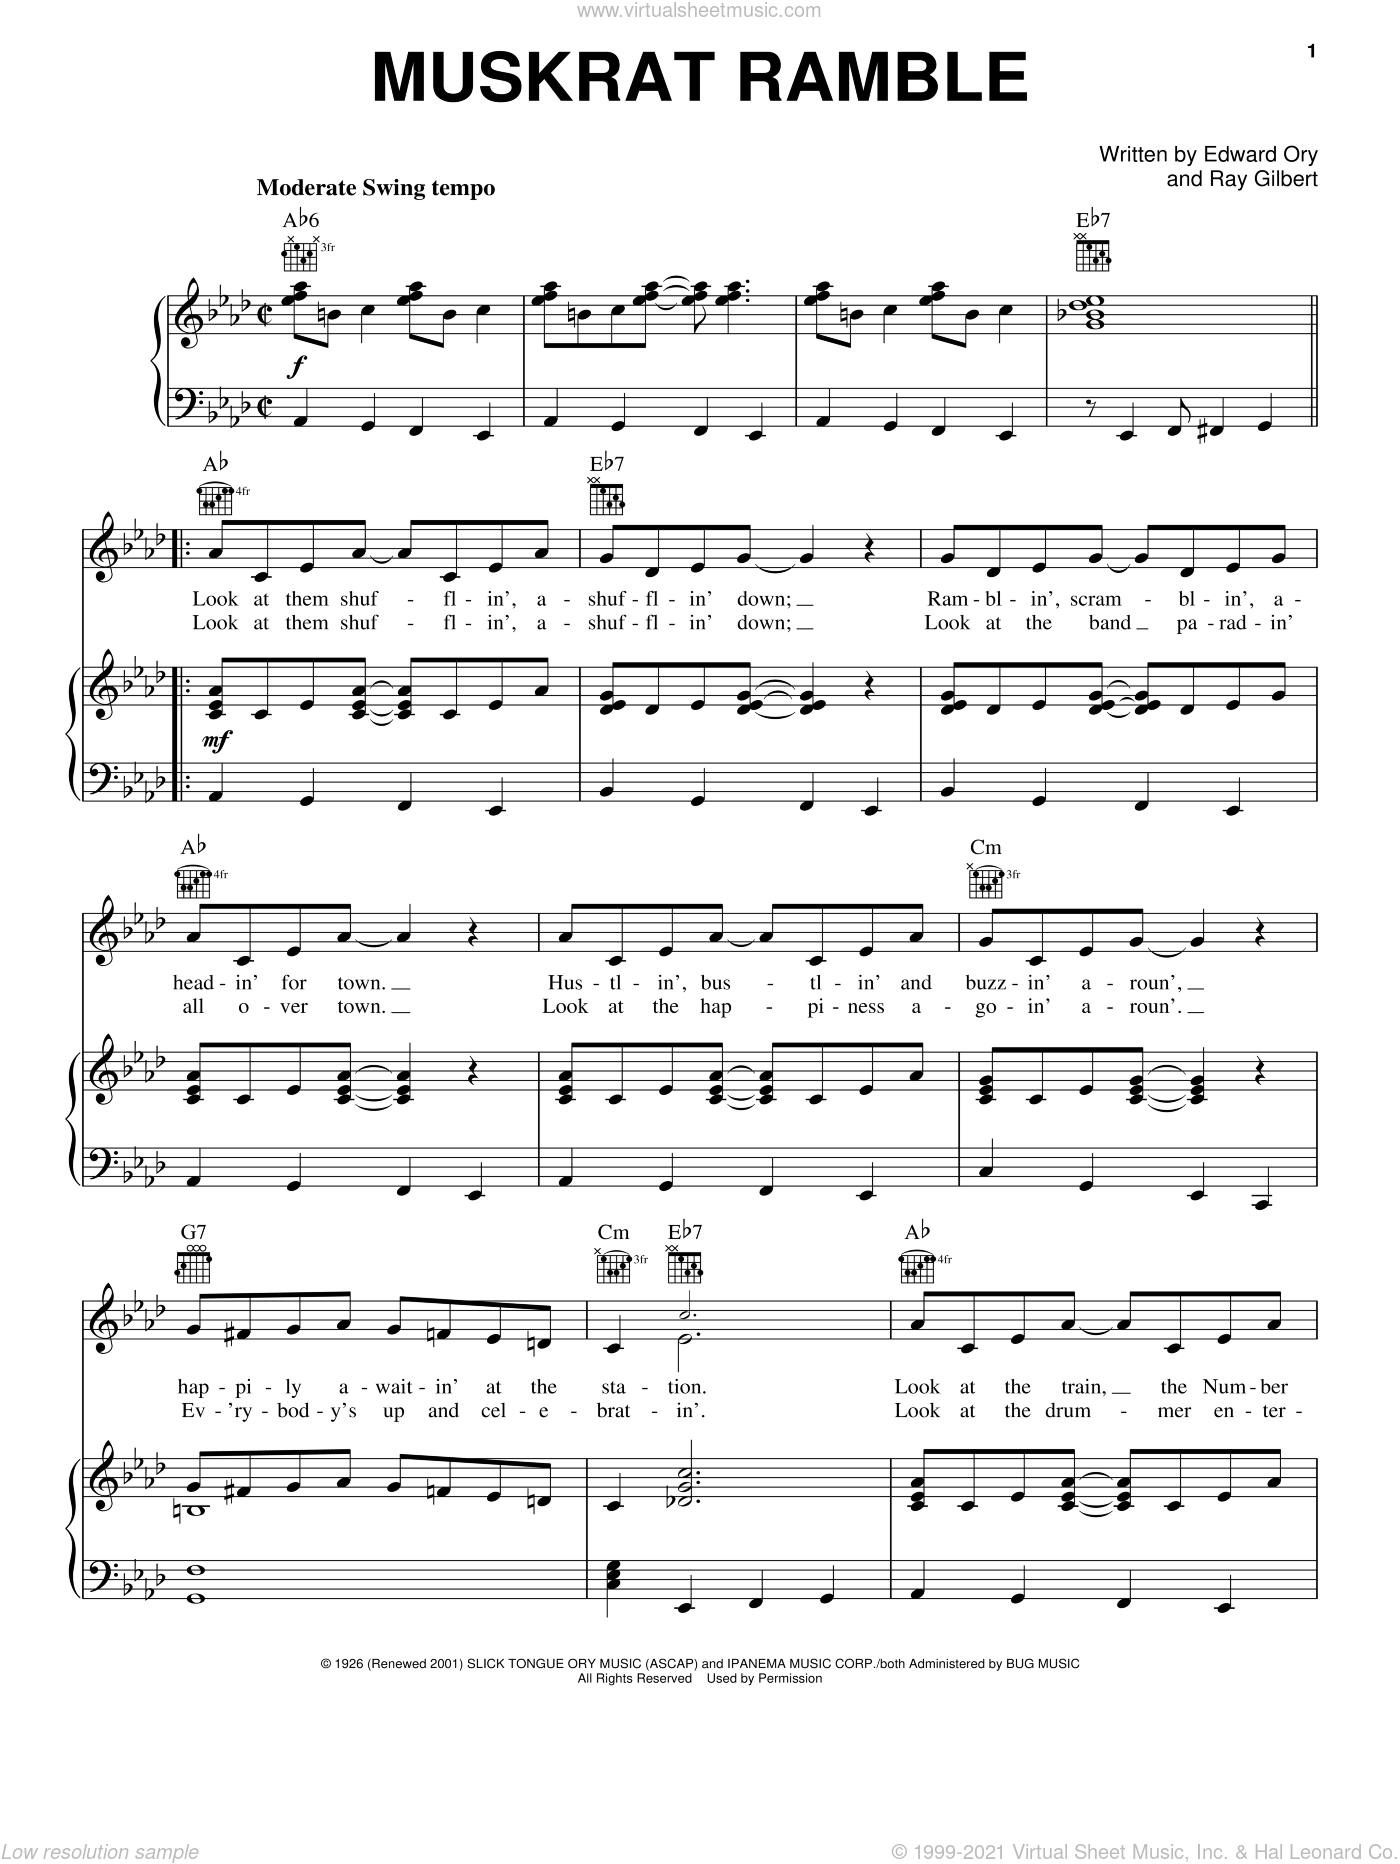 Muskrat Ramble sheet music for voice, piano or guitar by Ray Gilbert